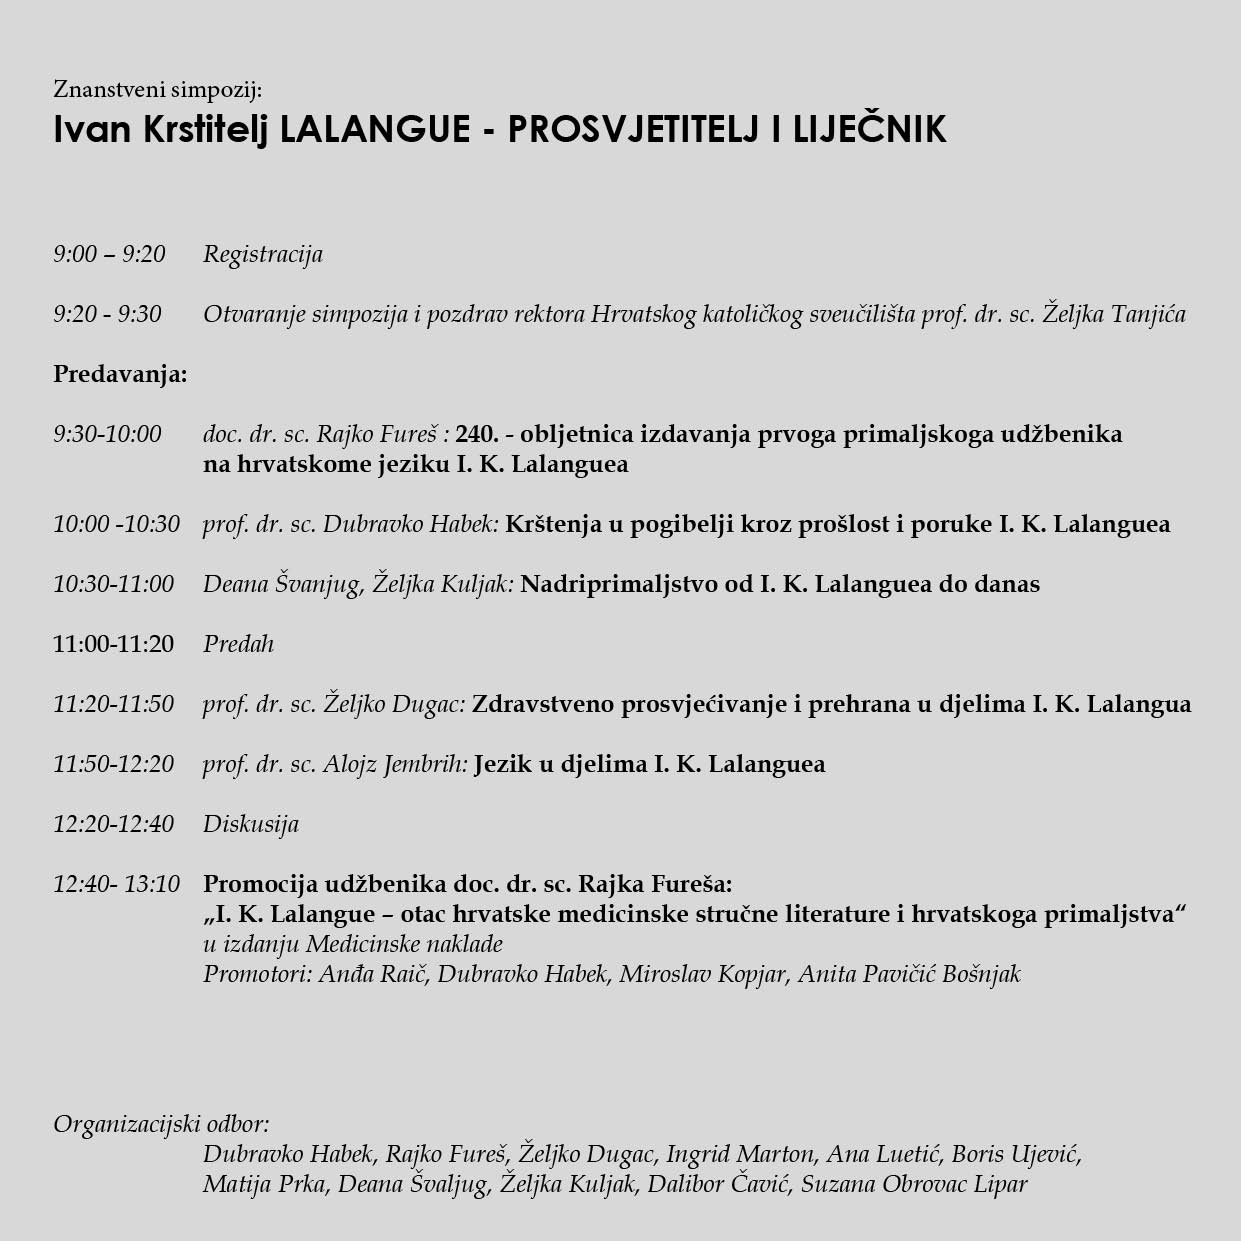 23.9.2017. Lalangue program2